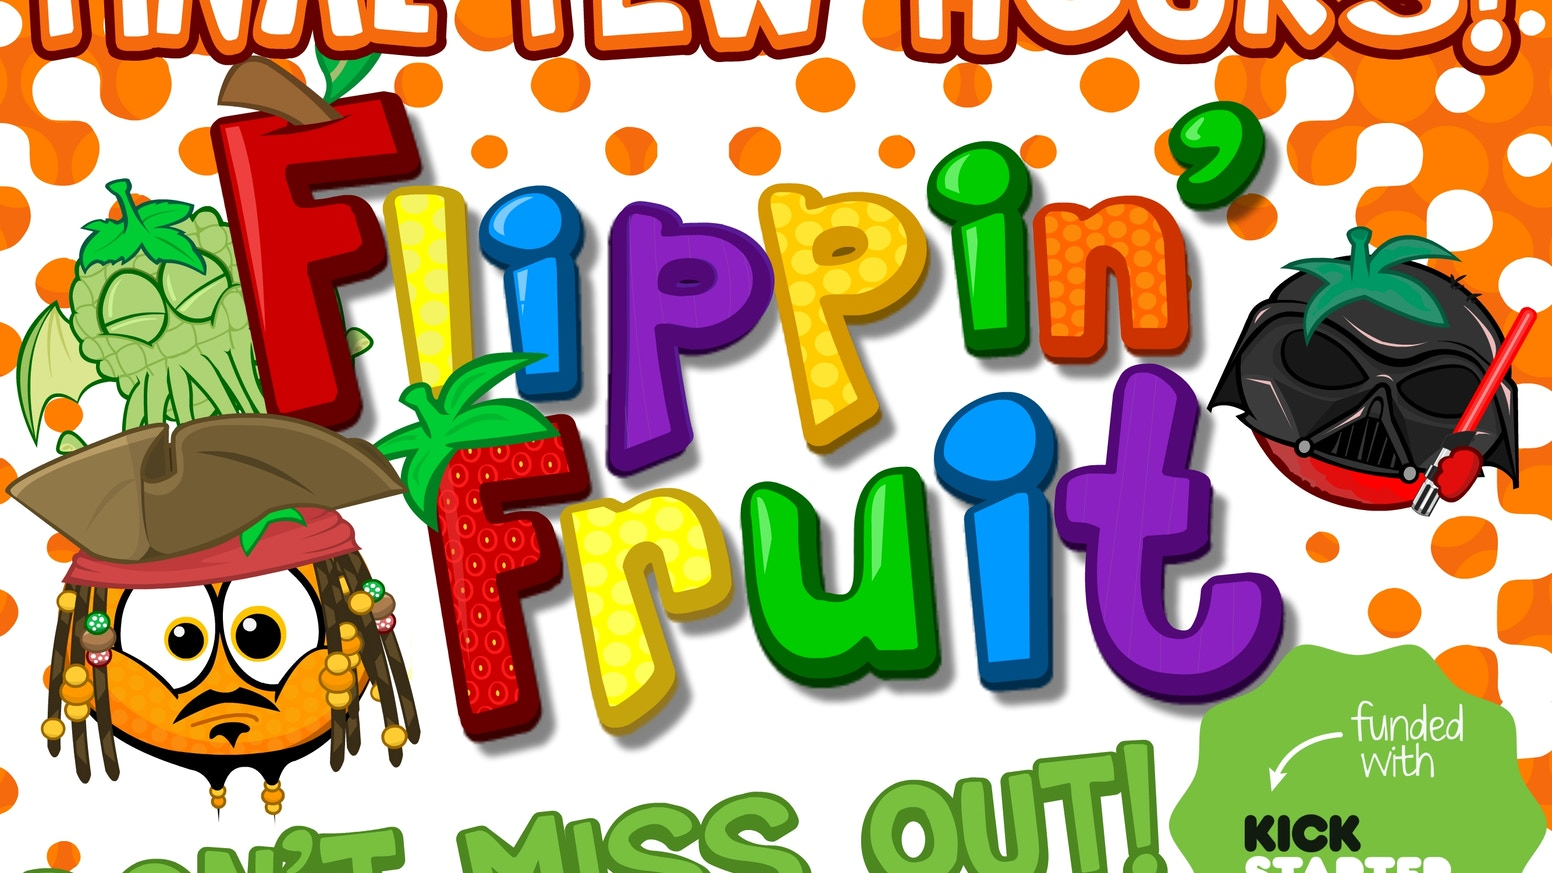 Flippin' Fruit is a crazy competitive tabletop game of 12 sided dice, cards, fruit and fun that will test your grapes! For 2-4 Players.